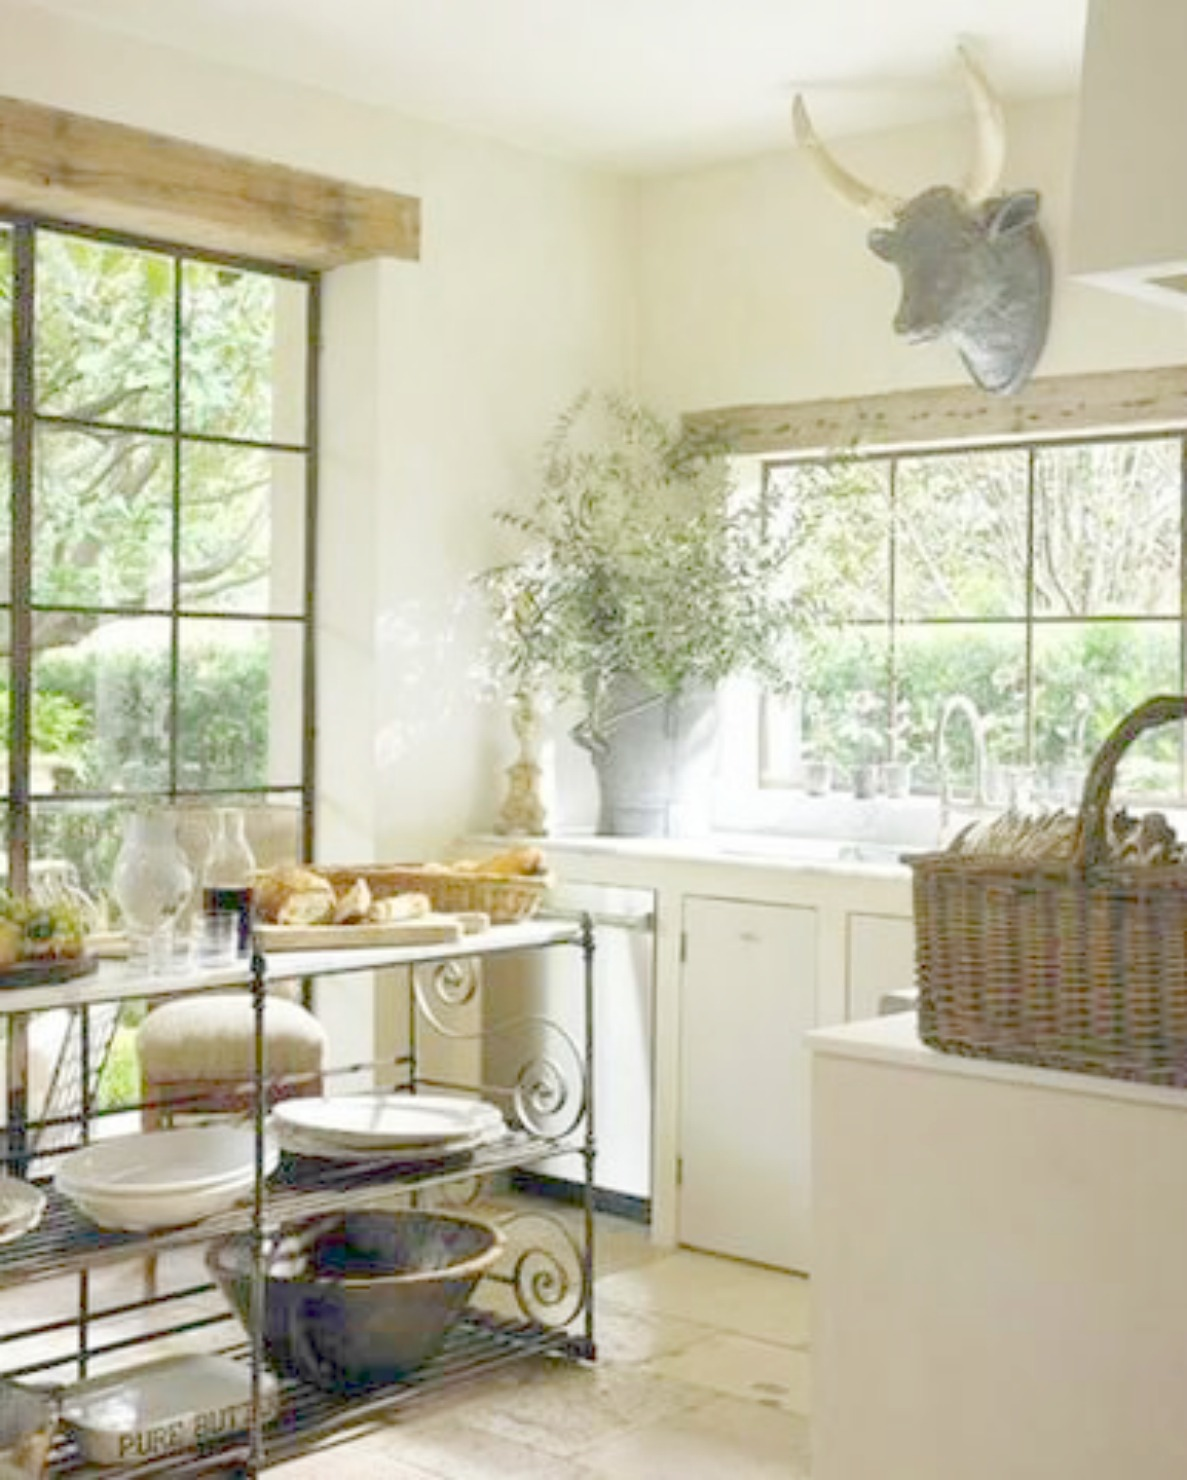 White French Country kitchen decor! Pamela Pierce's gorgeous home with sophisticated French Country decor and European farmhouse charm on Hello Lovely Studio